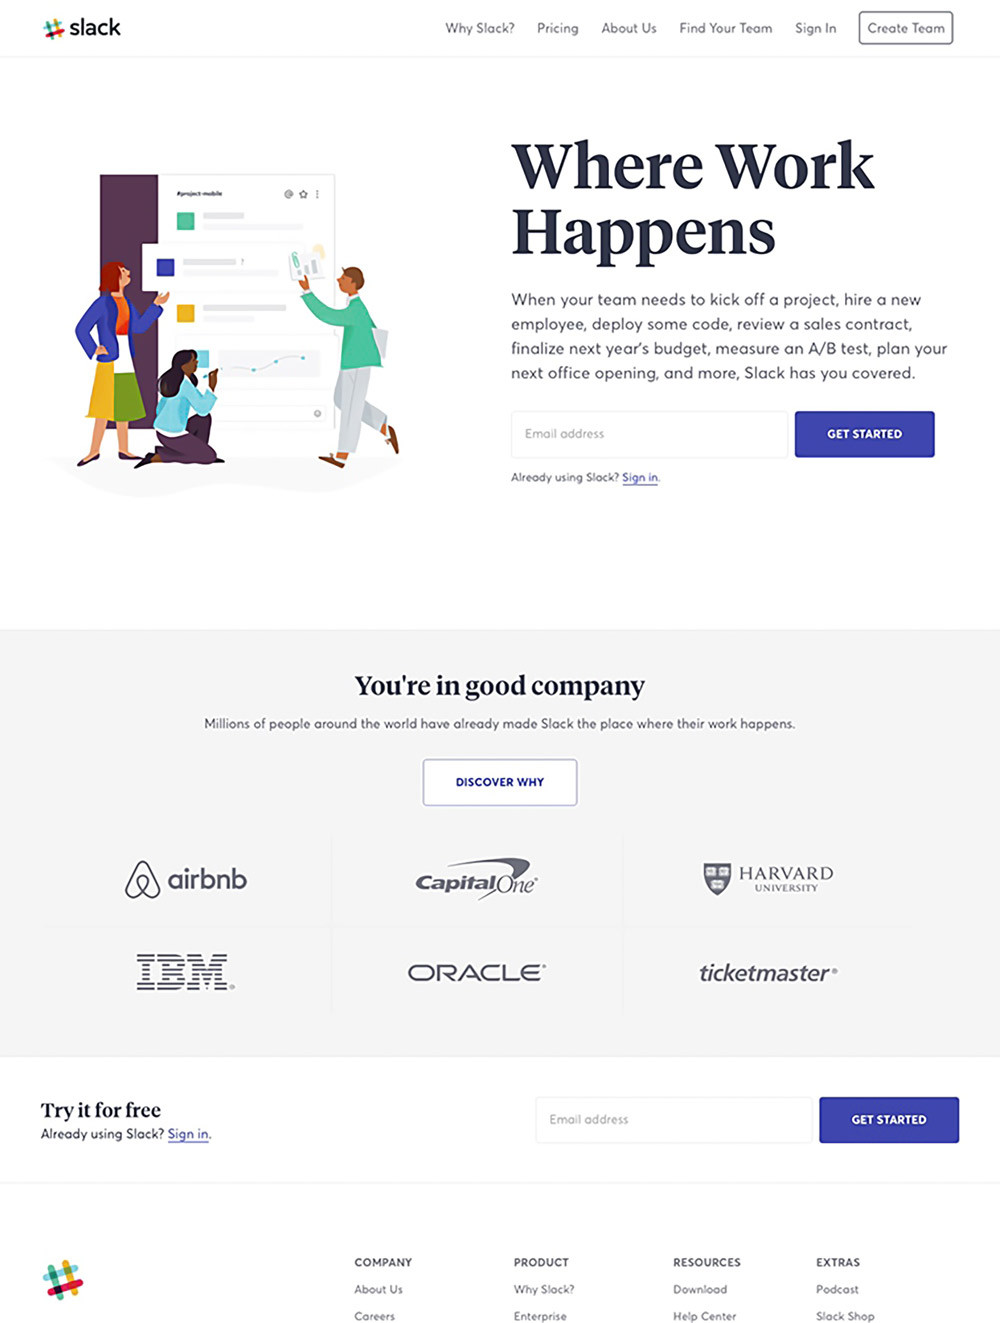 Slack's landing page example